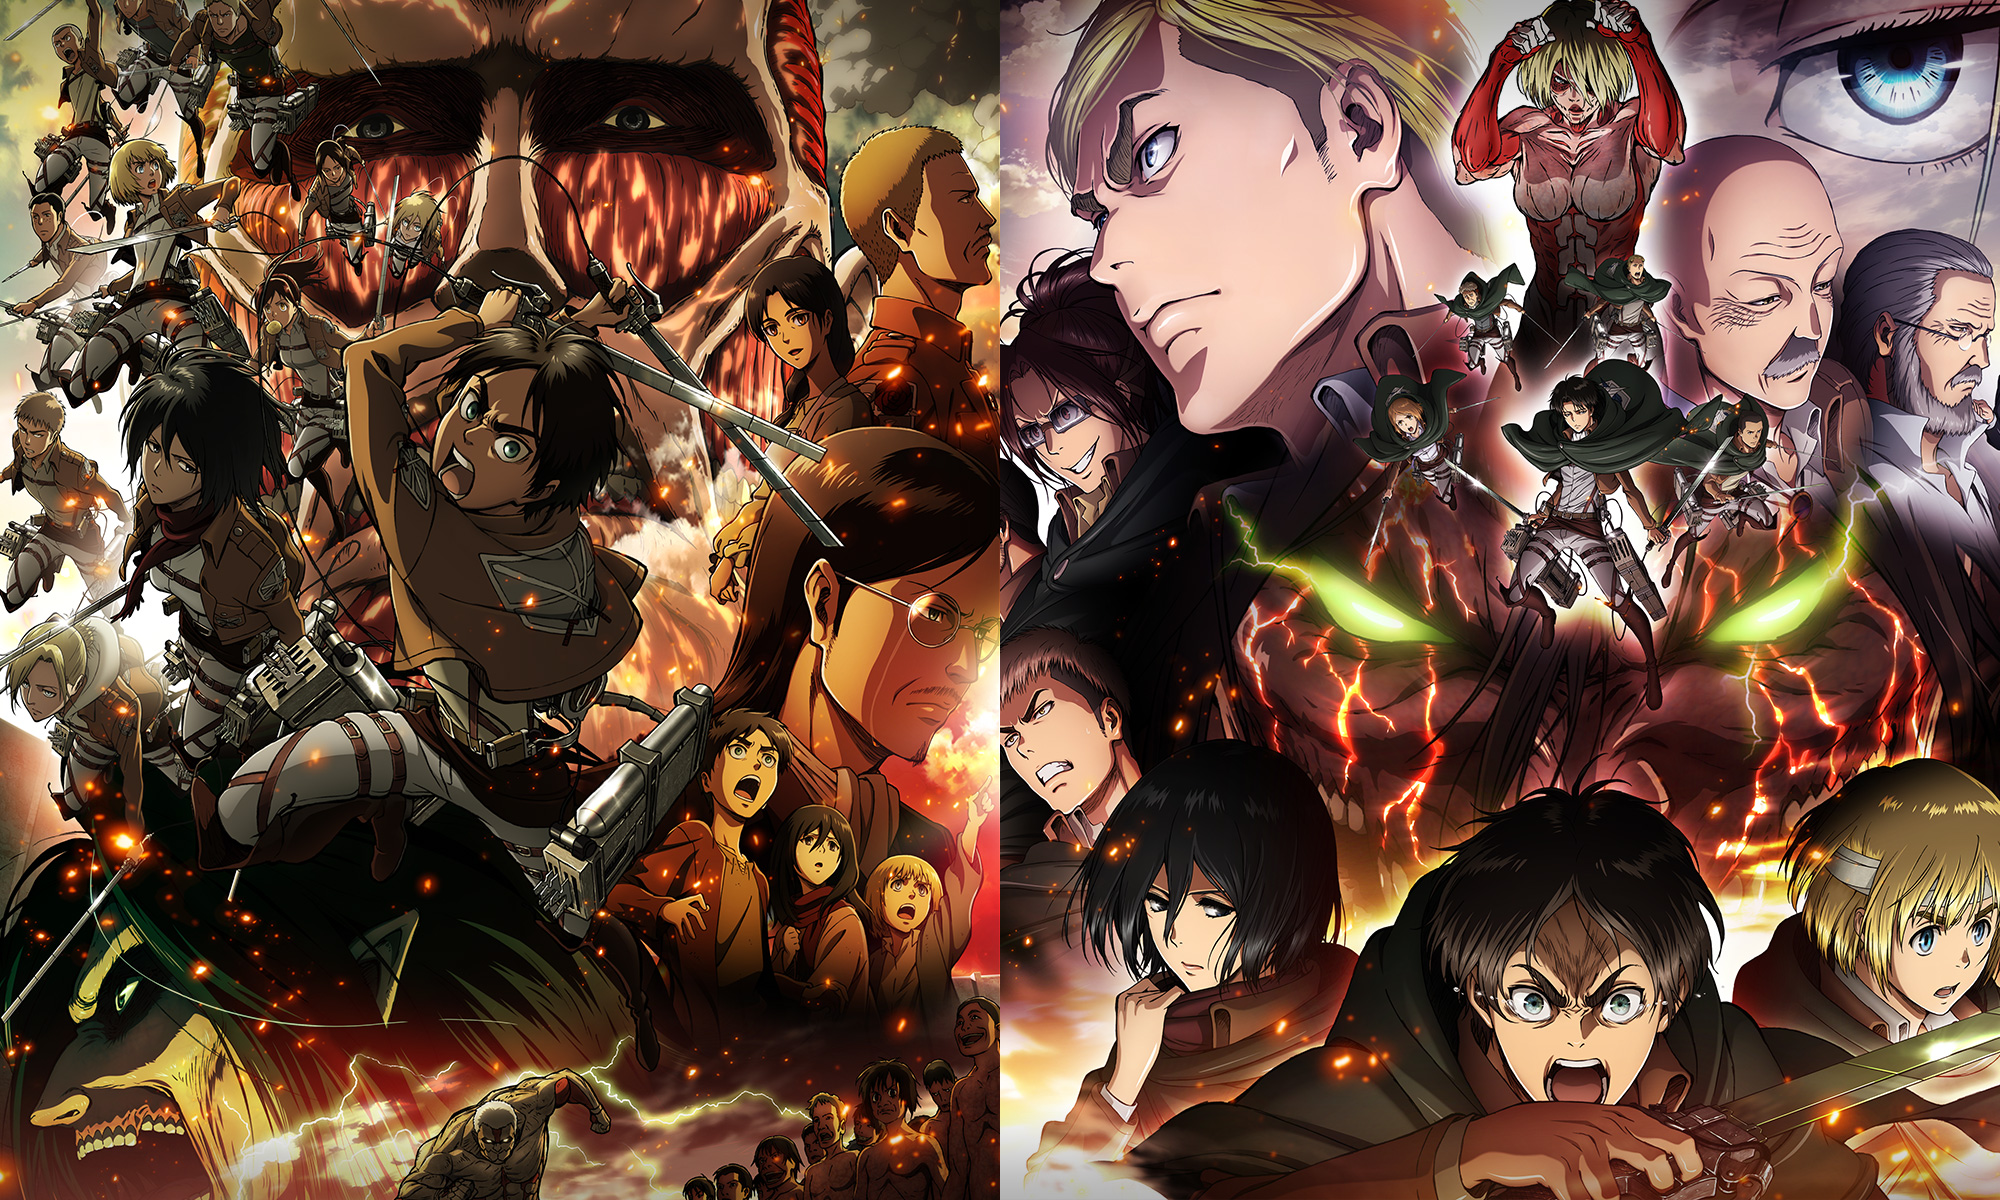 Watch the first two Attack on Titan compilation movies, full-length  animated films recapping Season 1. One movie will be shown each night.